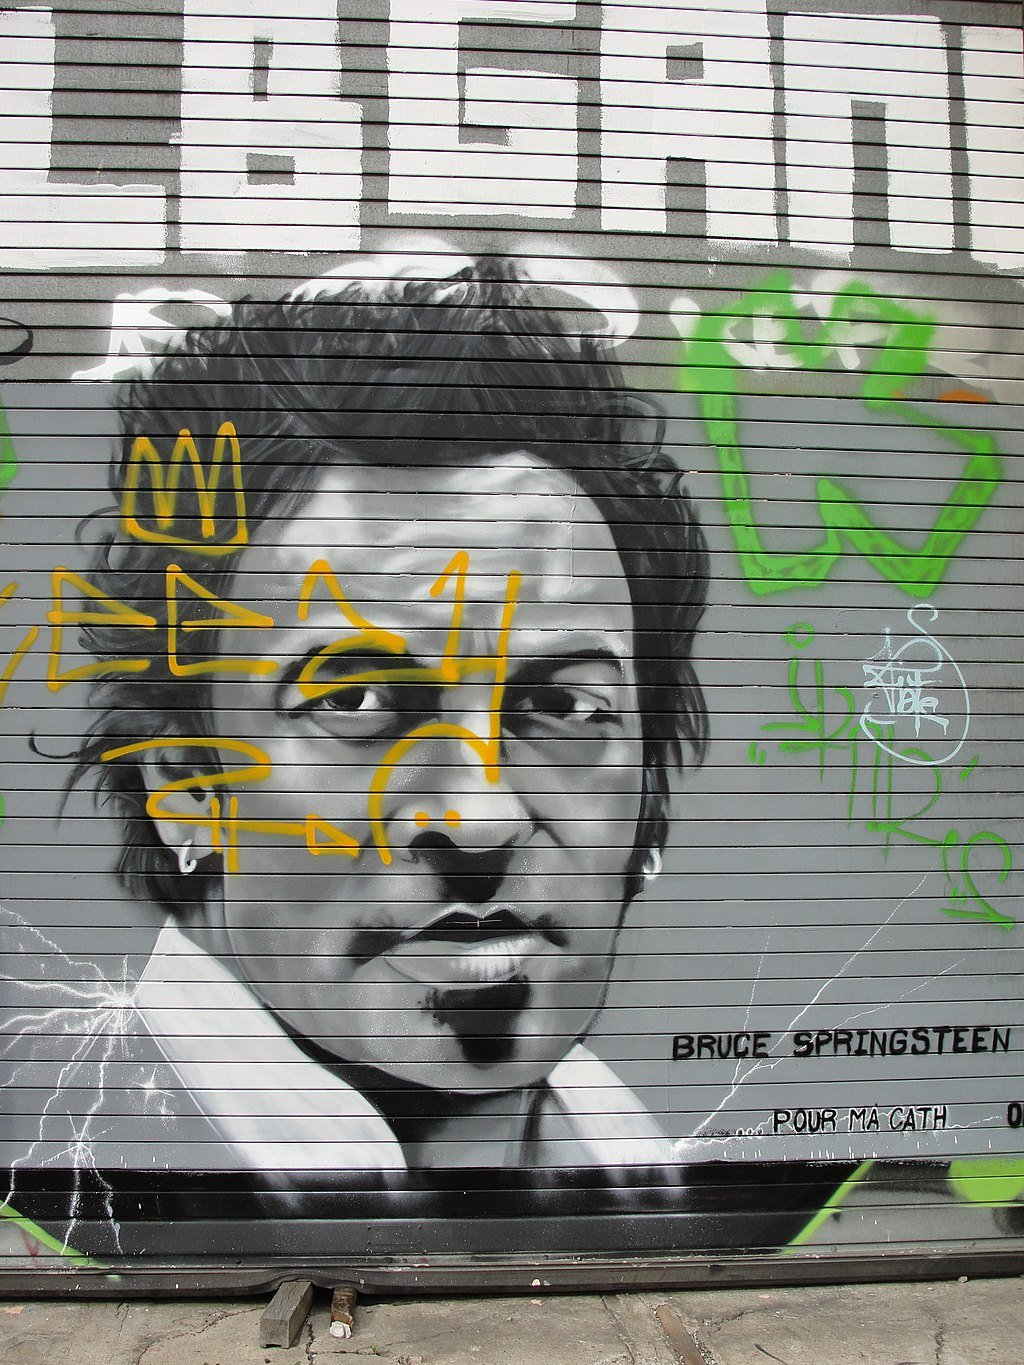 Bruce Springsteen graffiti